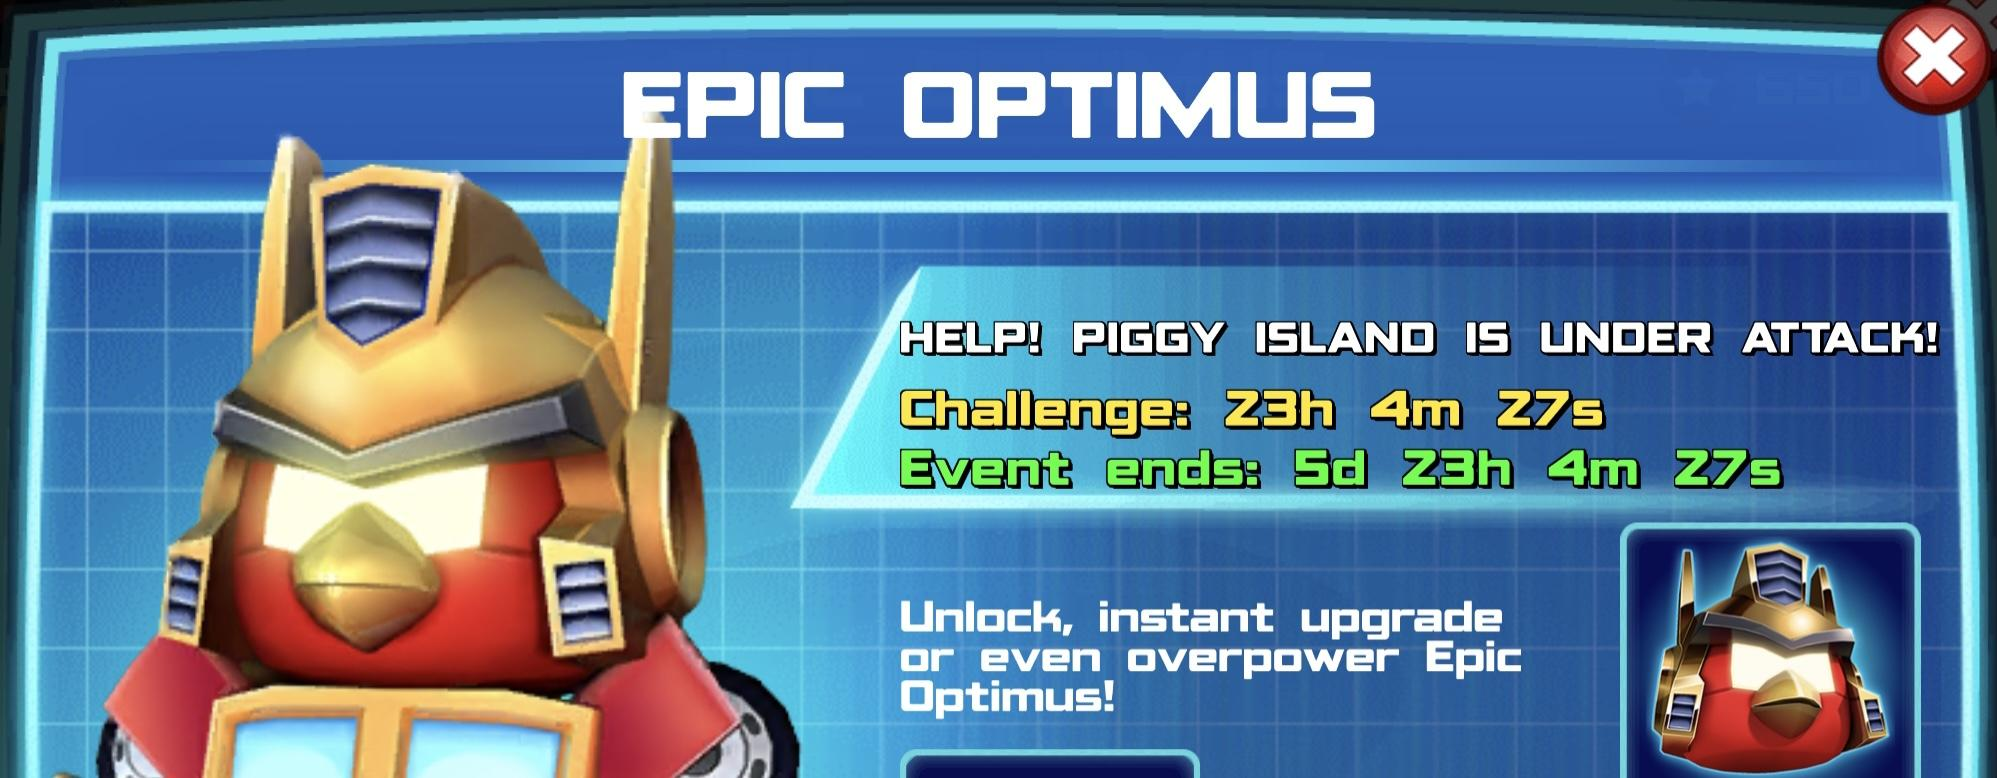 The event banner for Epic Optimus